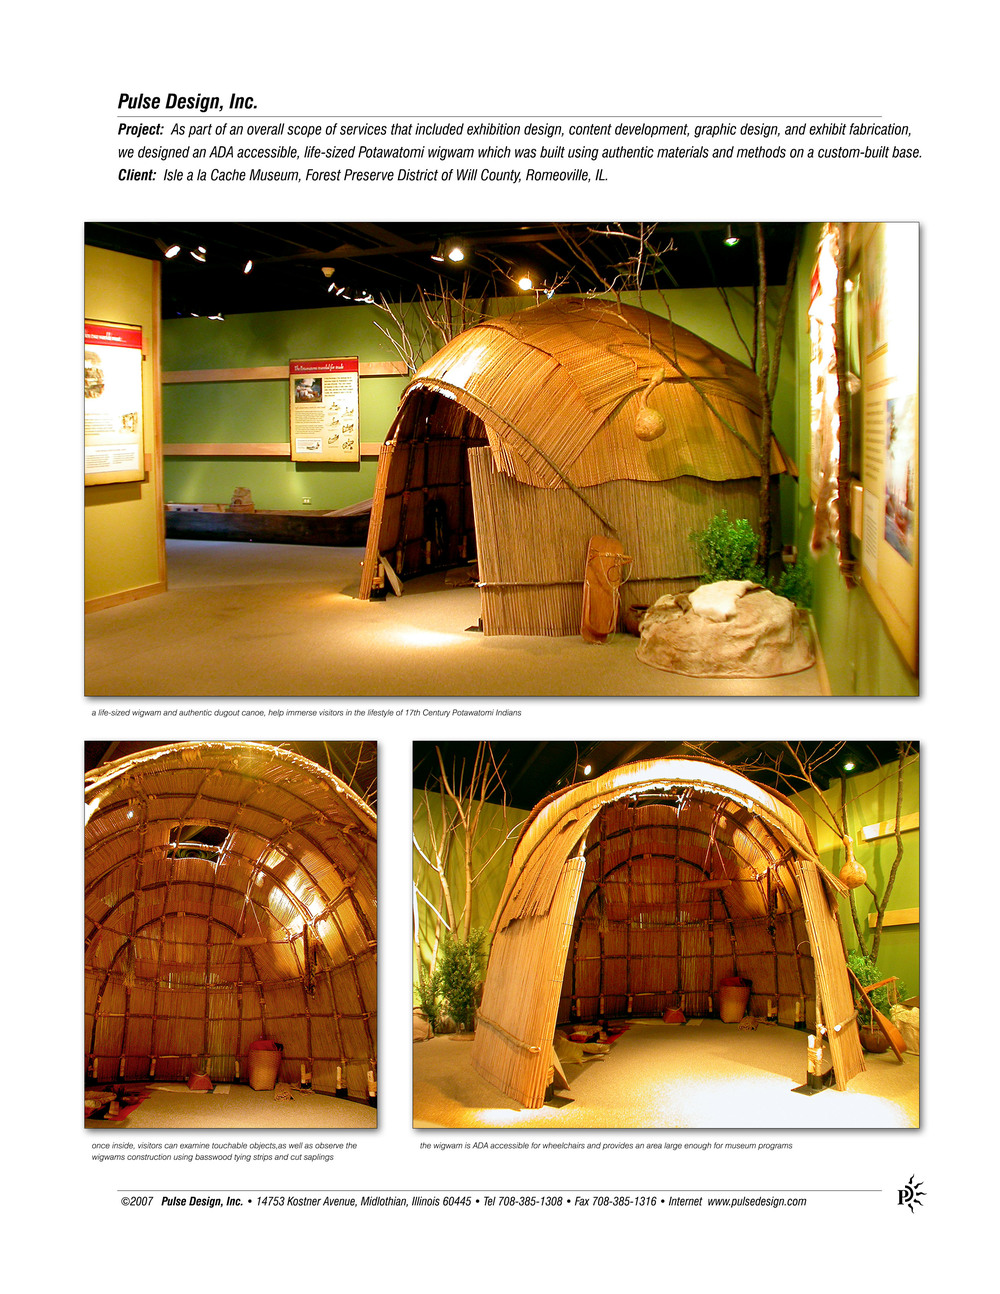 Isla-a-la-Cache-Exhibit-Wigwam-Pulse-Design-Inc.jpg